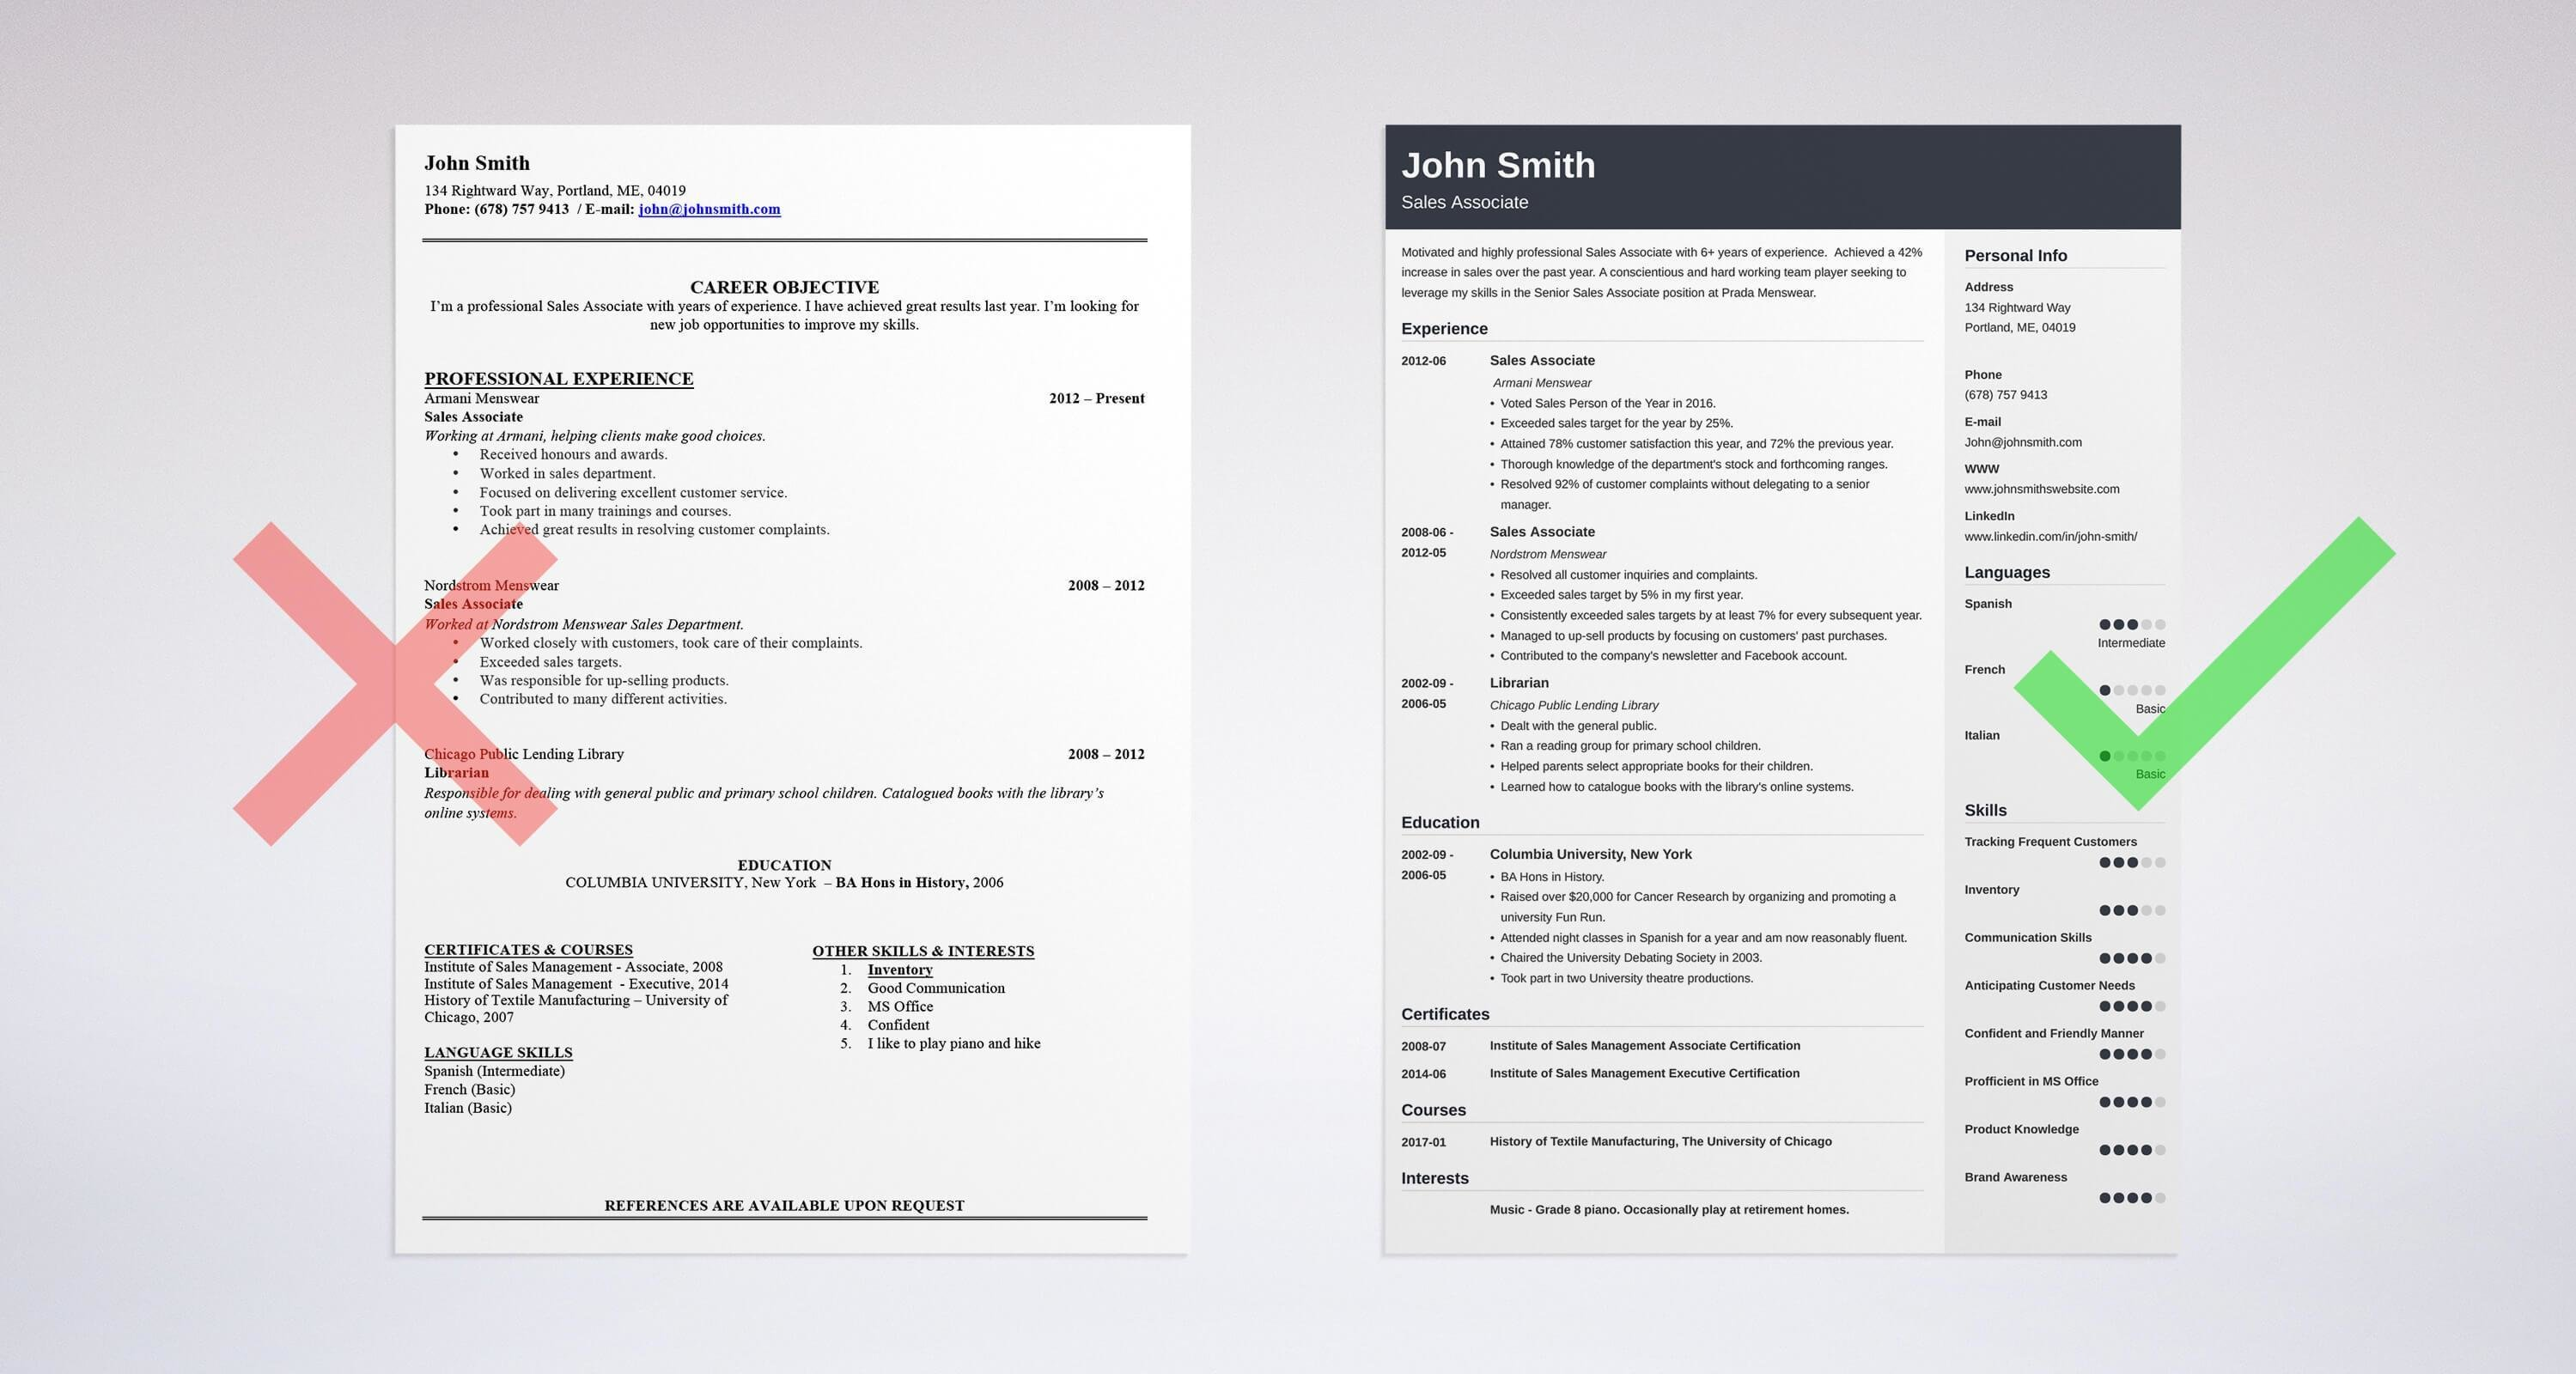 resume summary no zoom - How To Make The Best Resume Possible